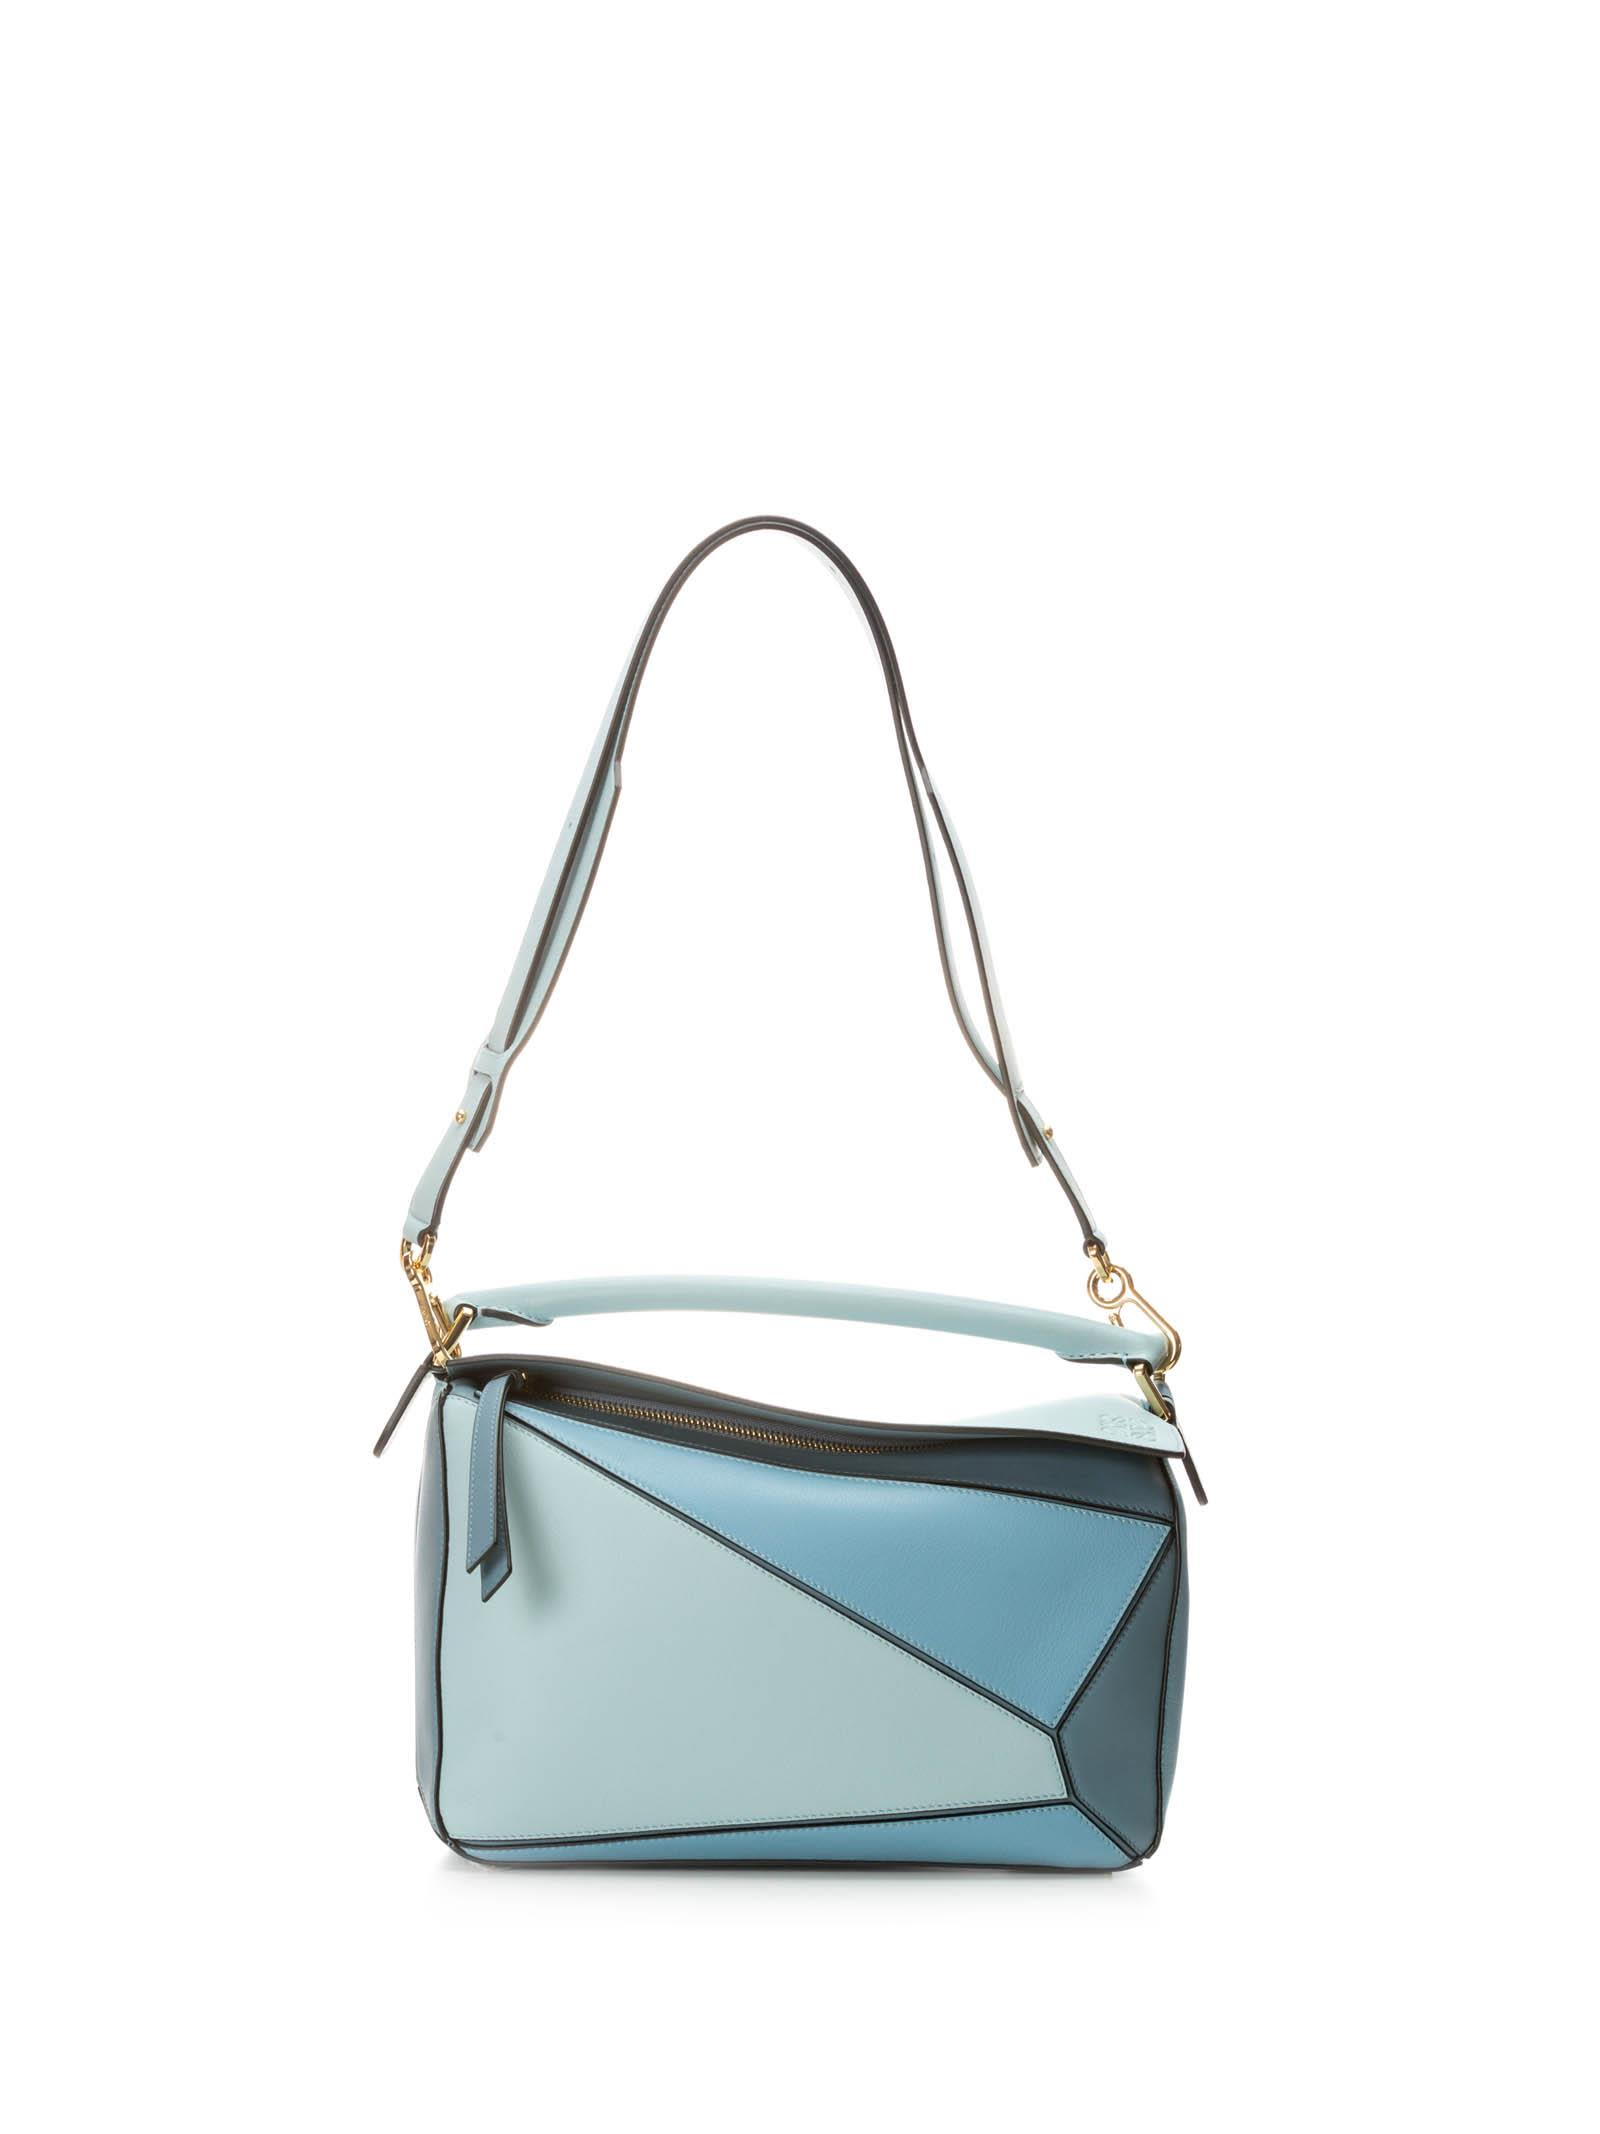 LOEWE PUZZLE BAG AQUA-LIGHT BLUE-STONE BLUE